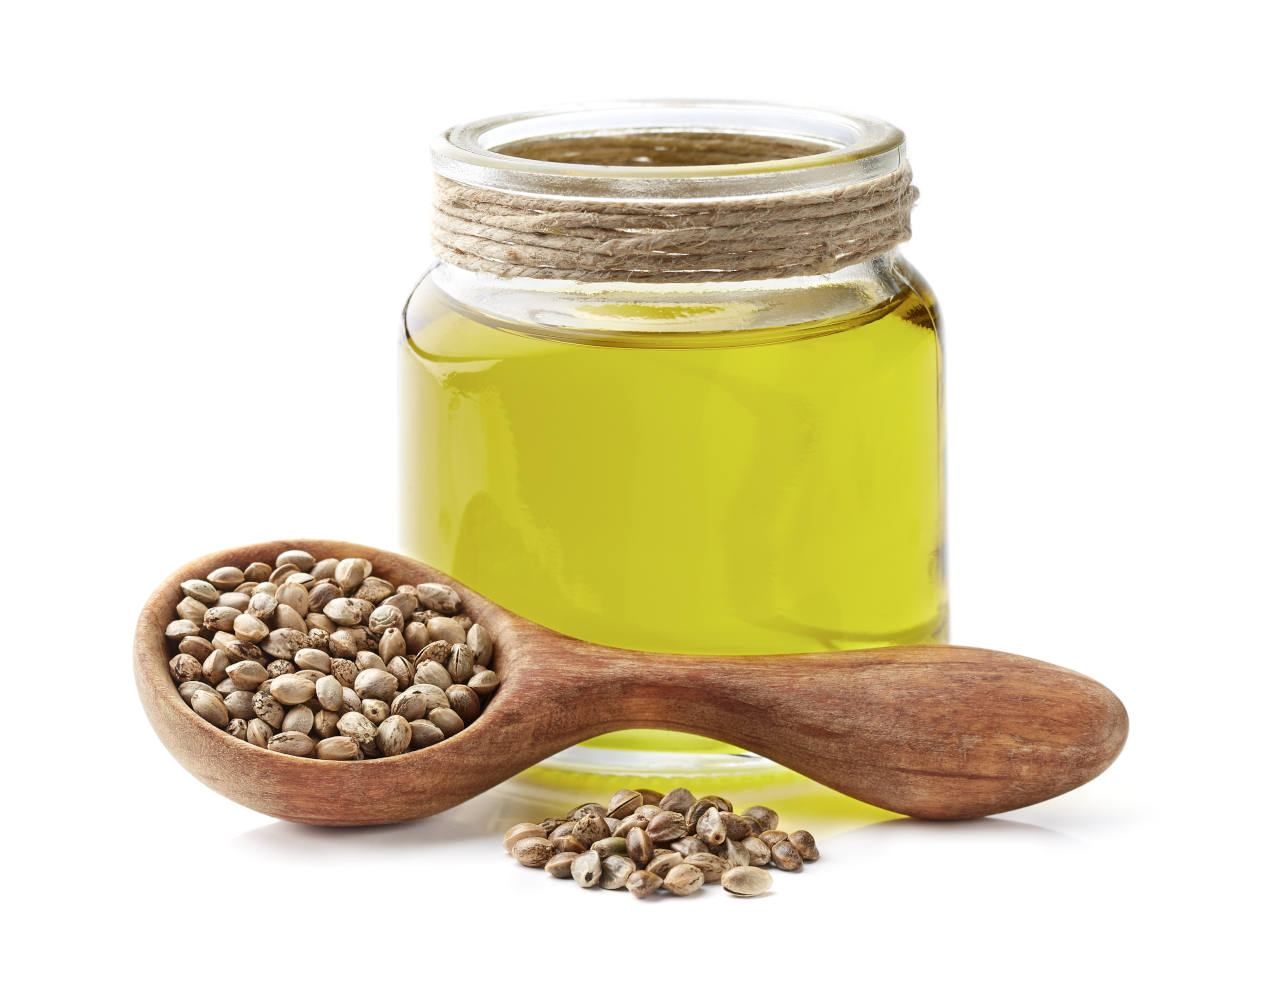 a jar of hemp oil for hair that is extracted from hemp seeds